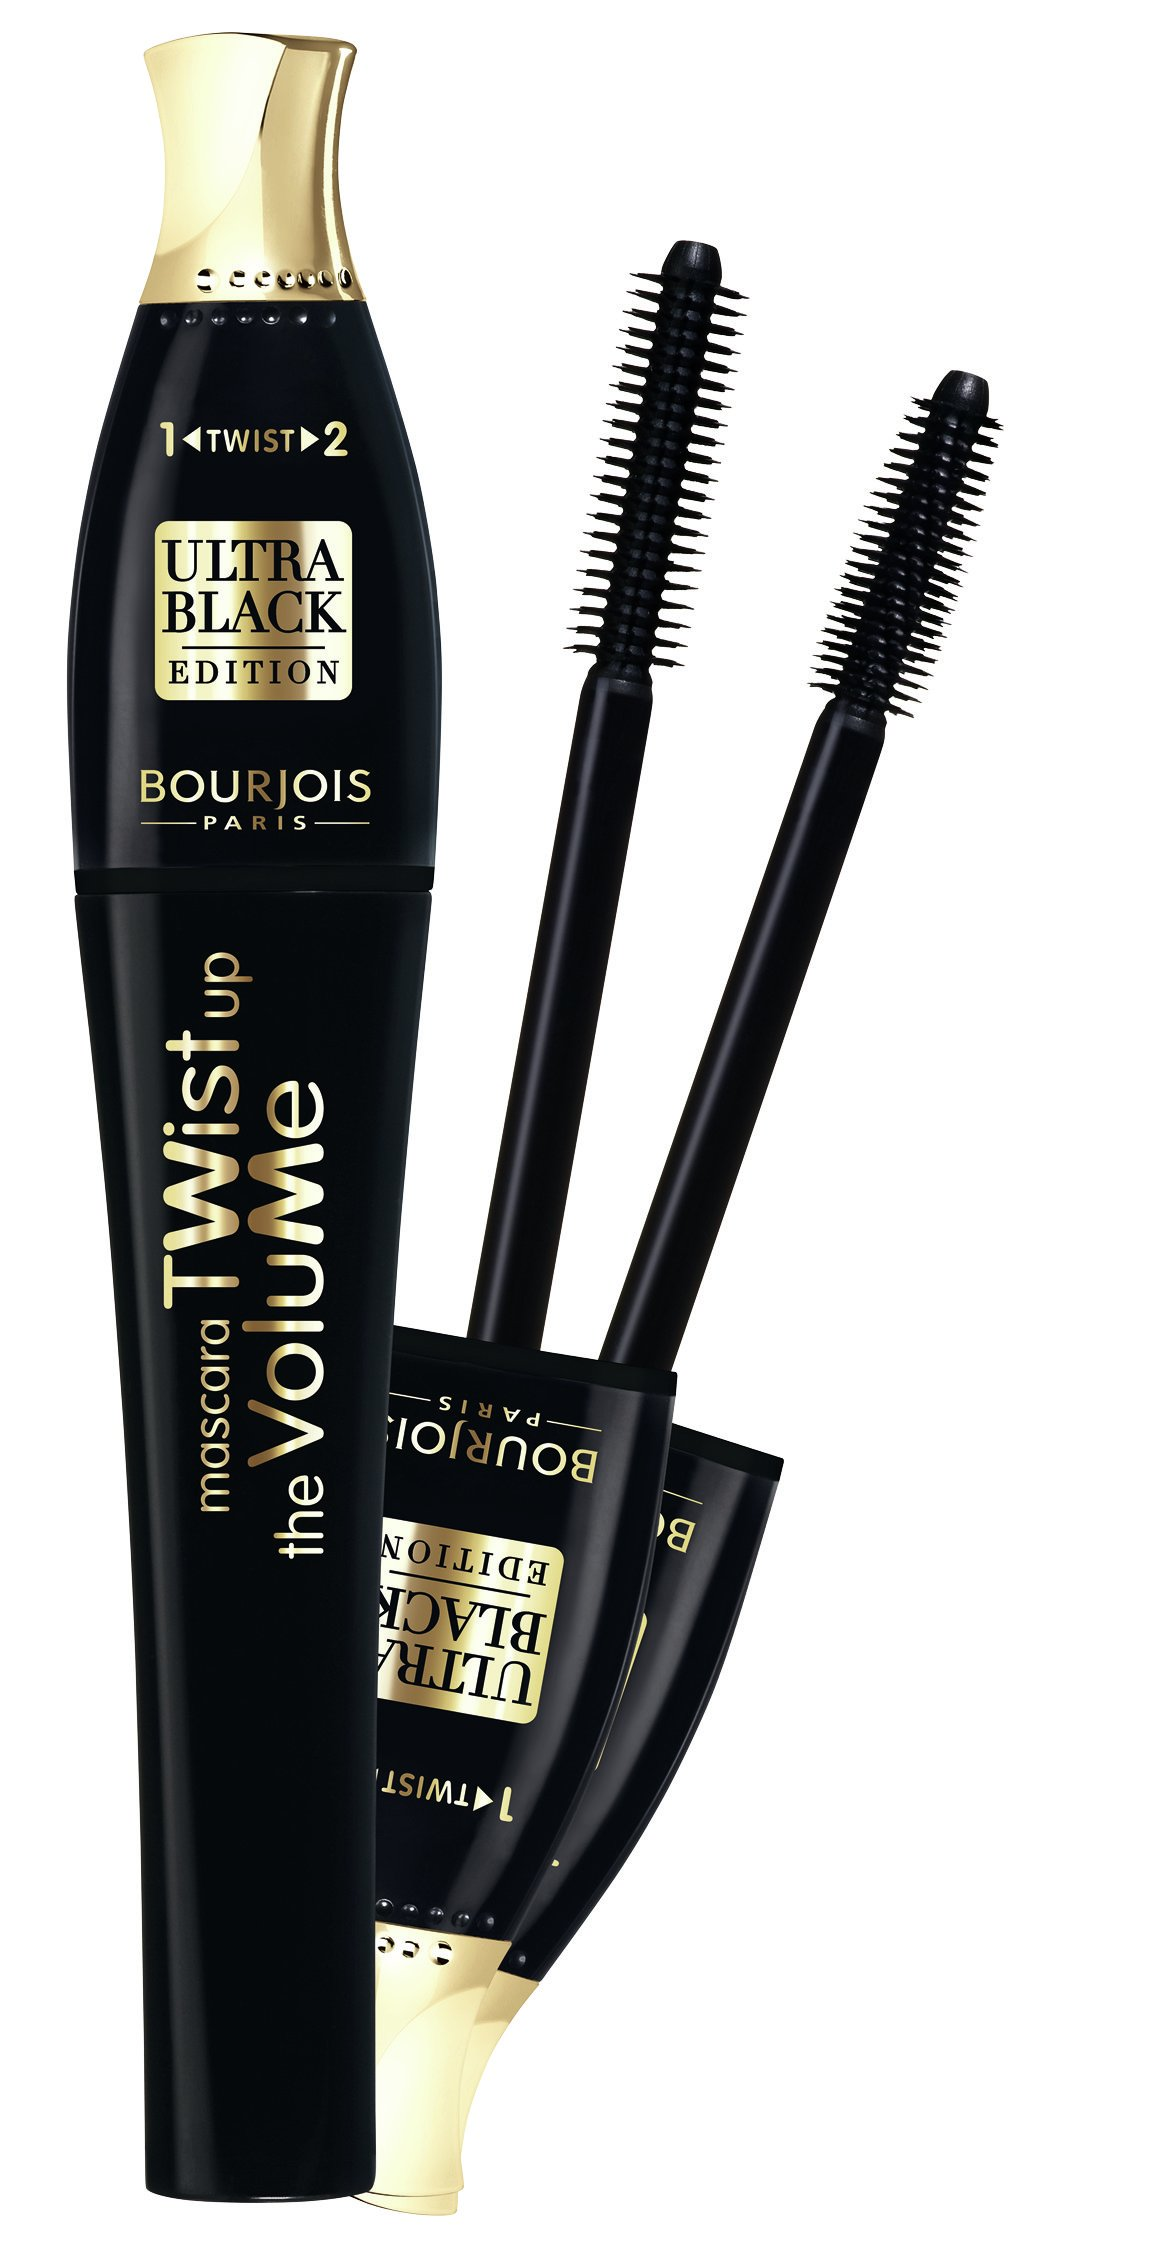 Blakstienų tušas Bourjois Twist Up The Volume Ultra Black Edition